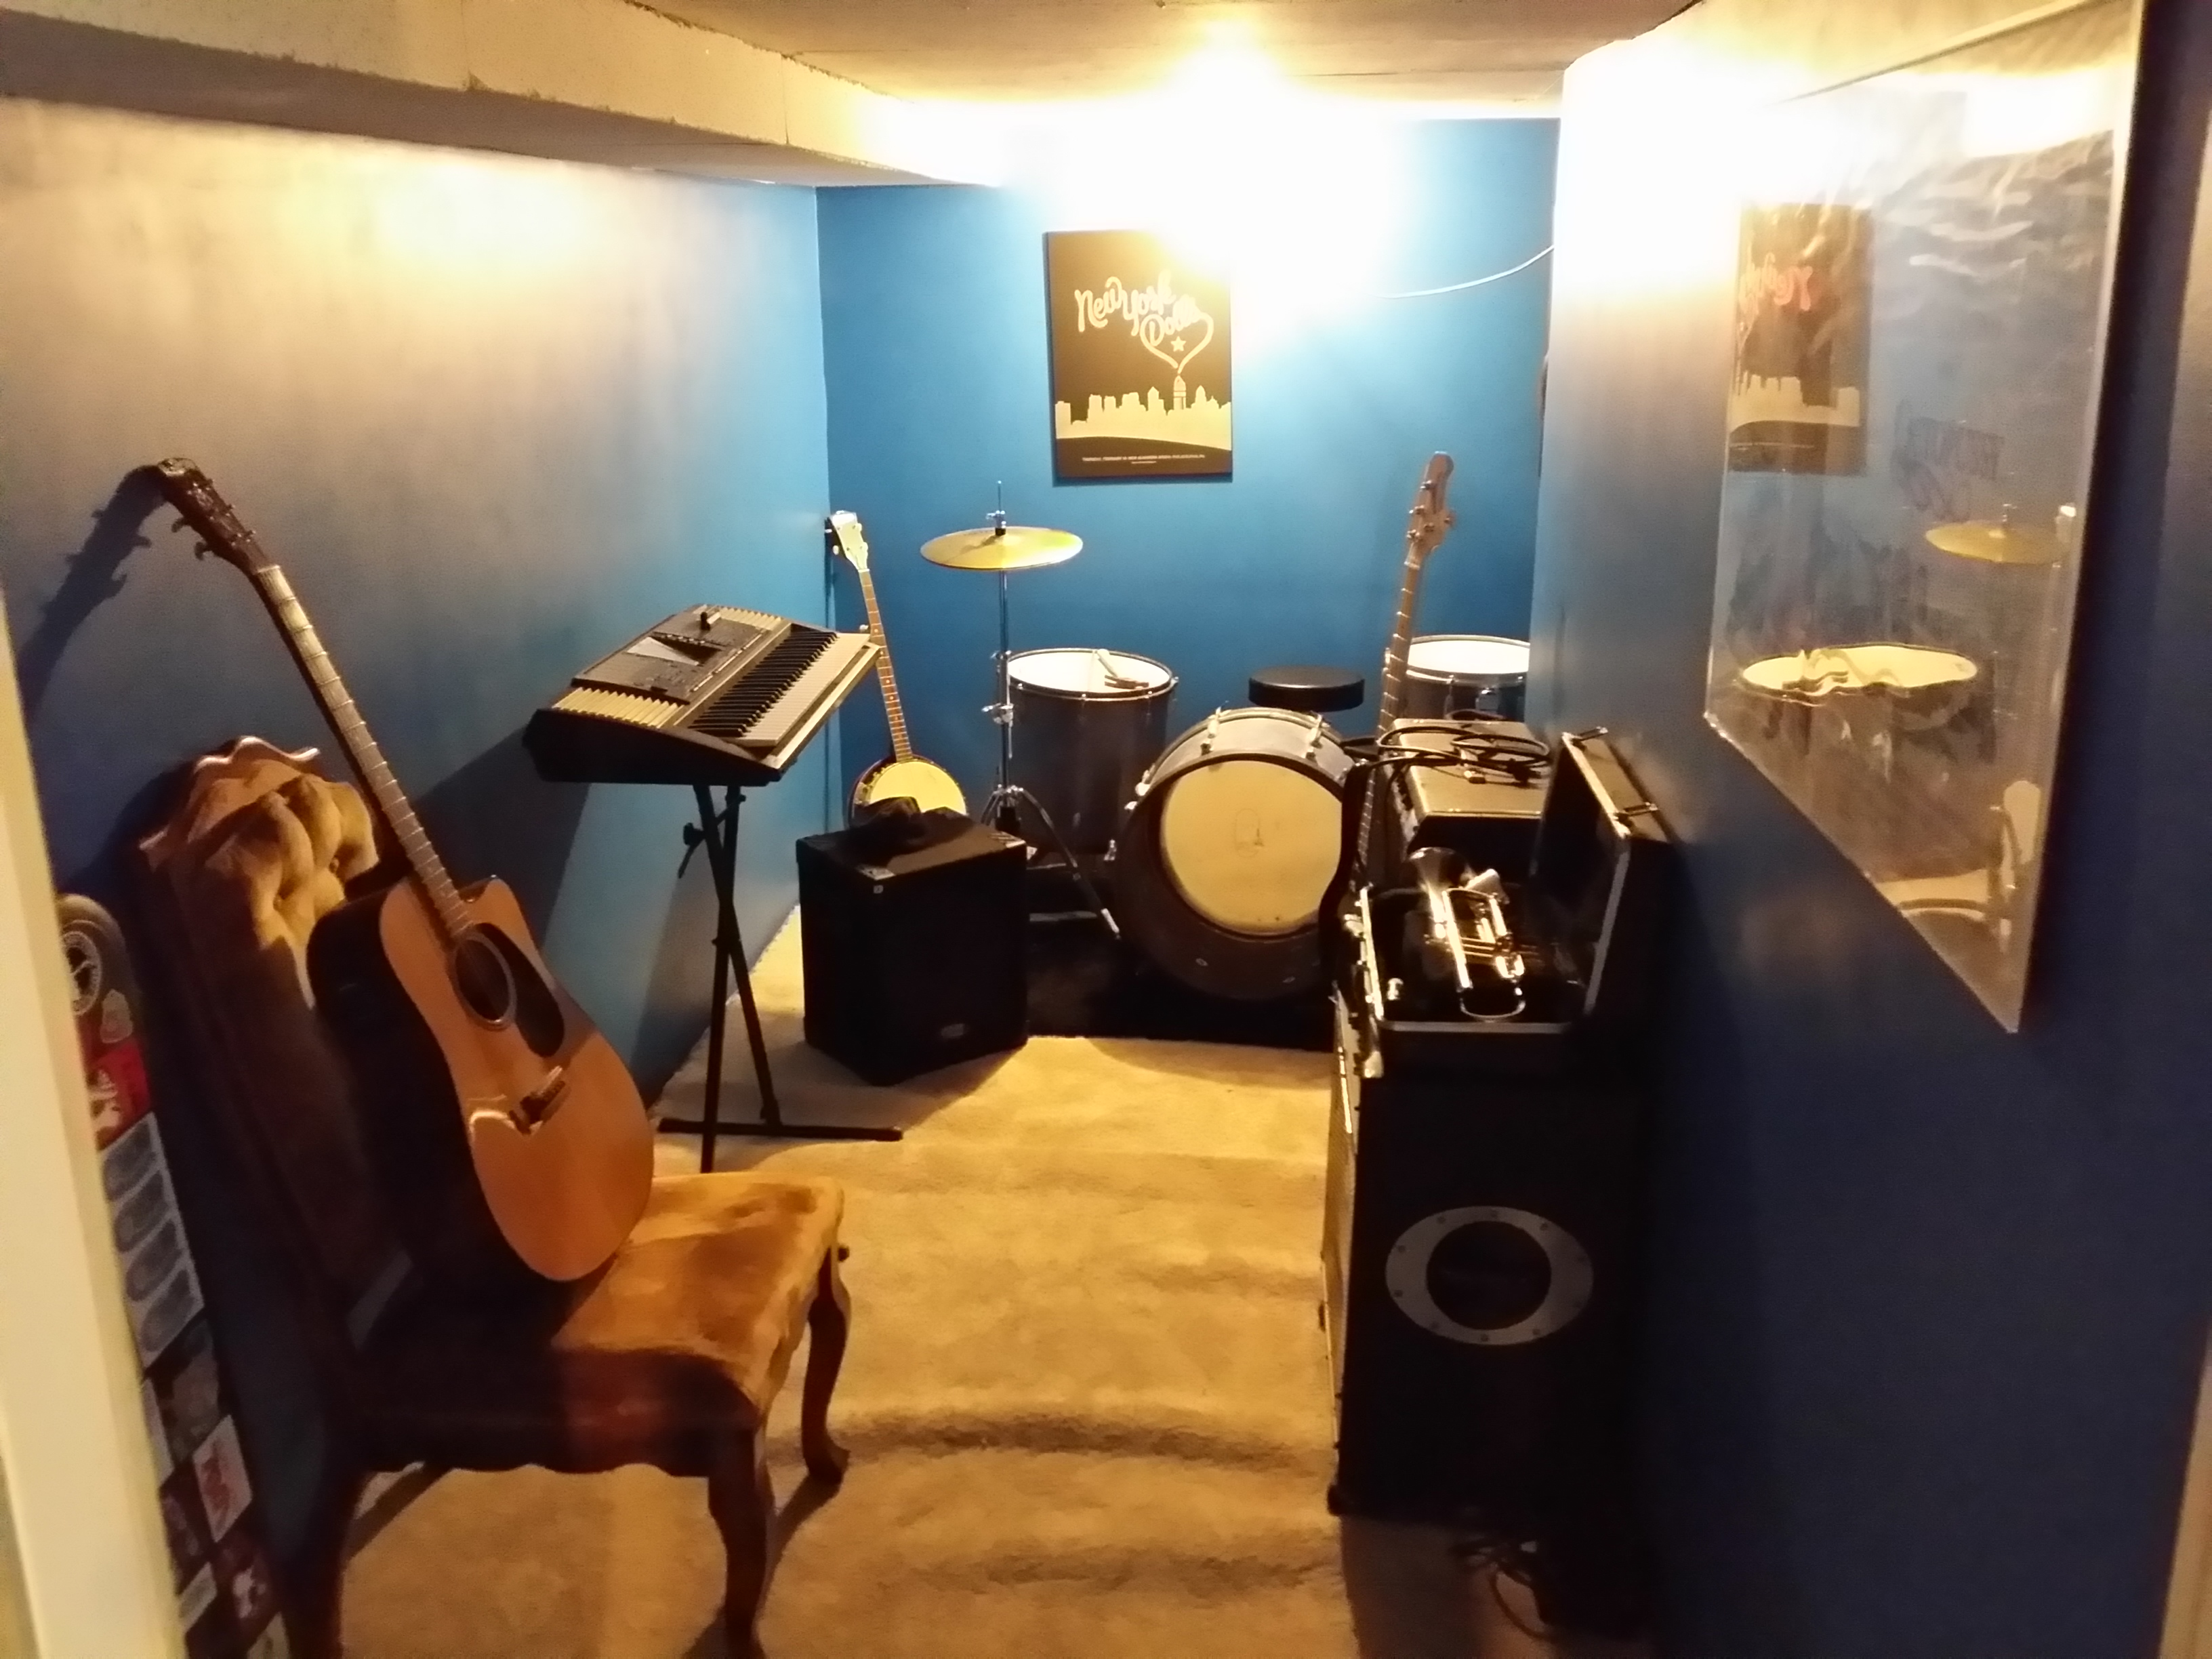 How To Build Your Own Soundproof Rehearsal Room When You Have No Idea What Youre Doing on small apartment building